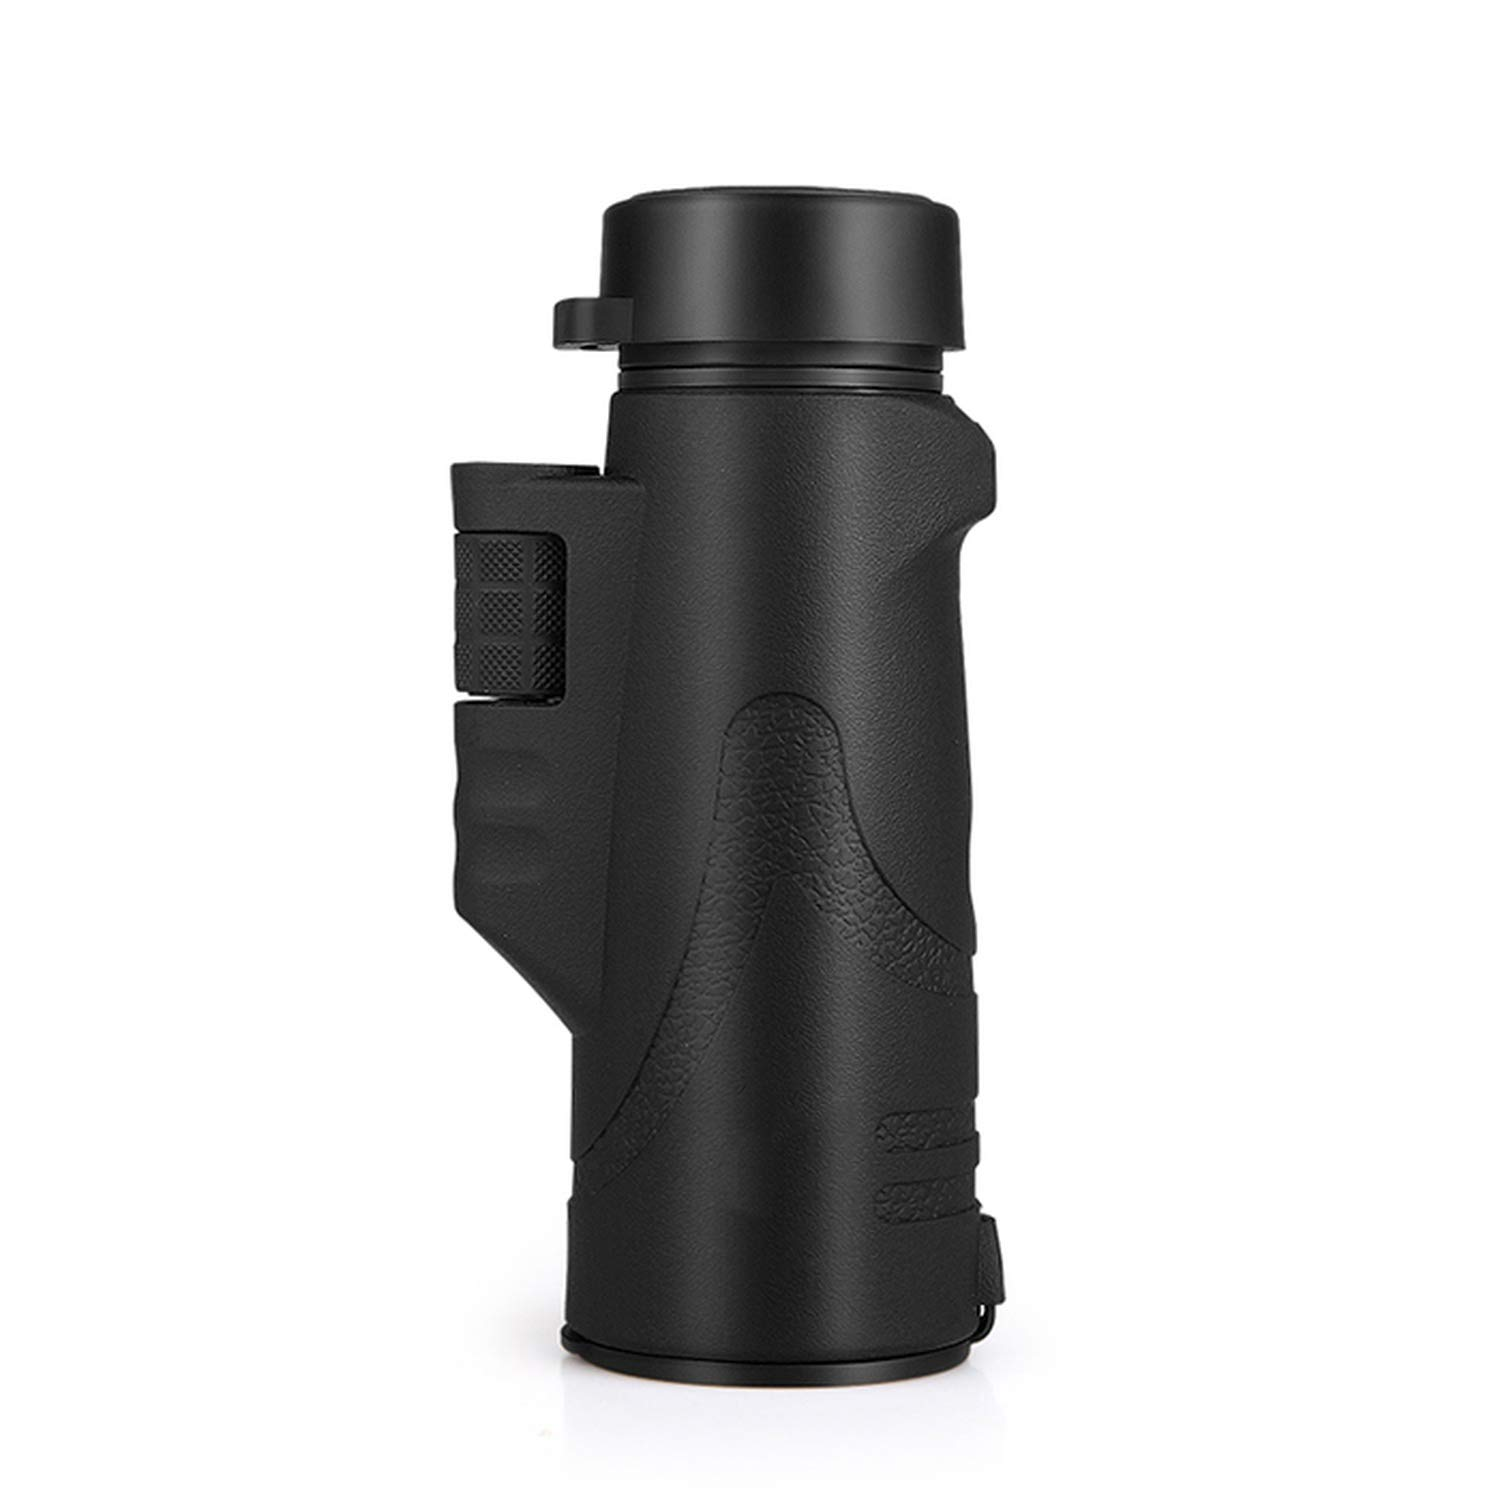 Crystal-heart-store 10X42 4 Colors Multi-Coated Prism Monocular Hunting Bird Watching Travel Telescope,Black by Crystal-heart-store